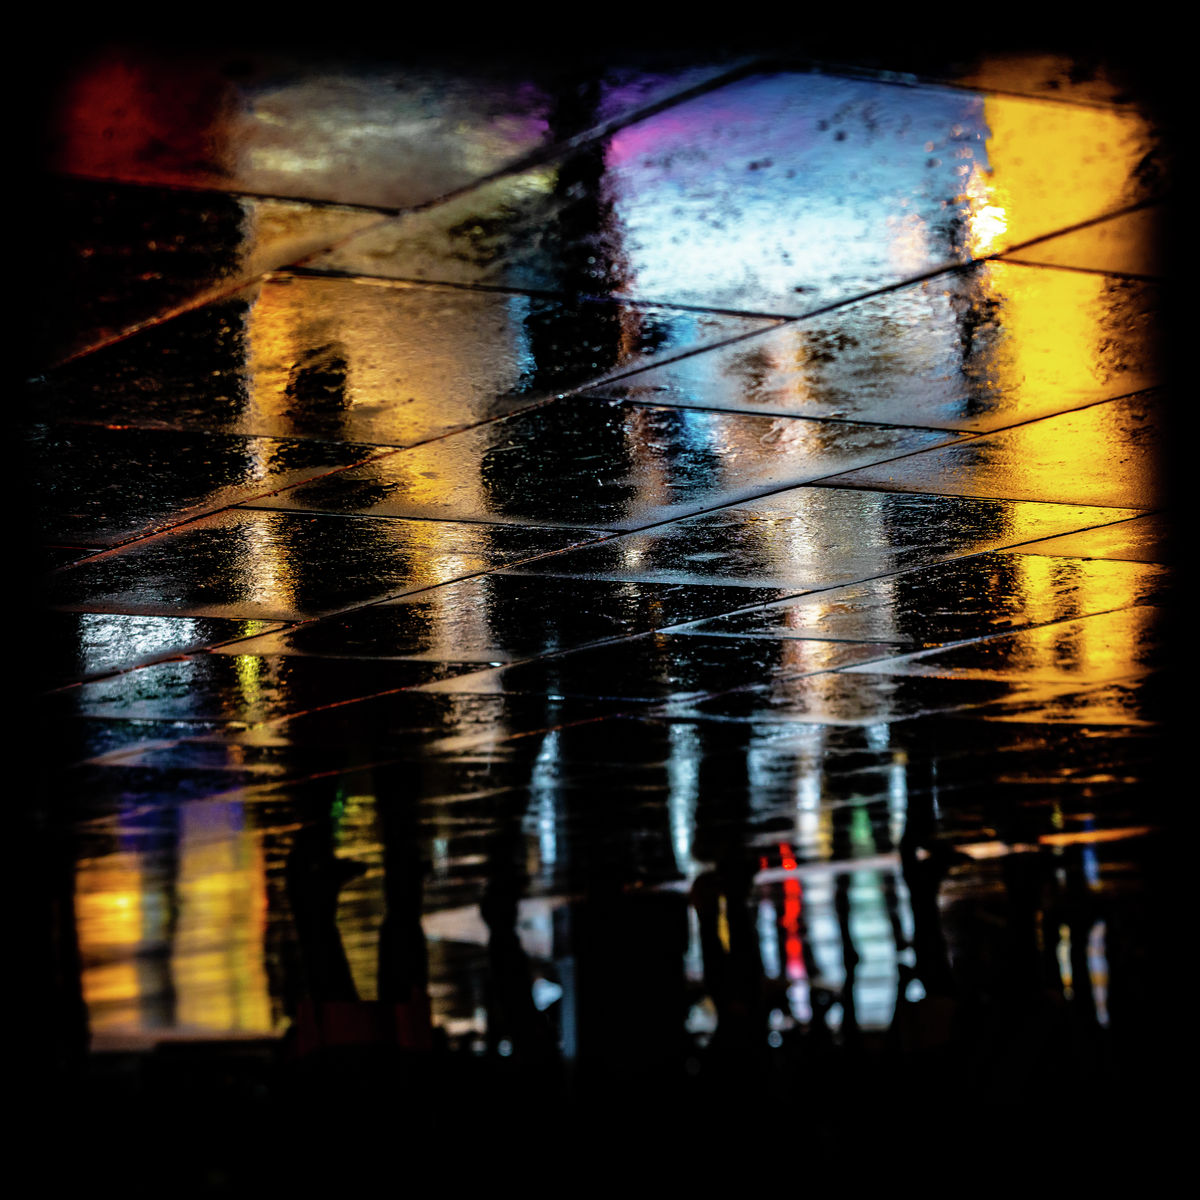 Rain Reflection 09